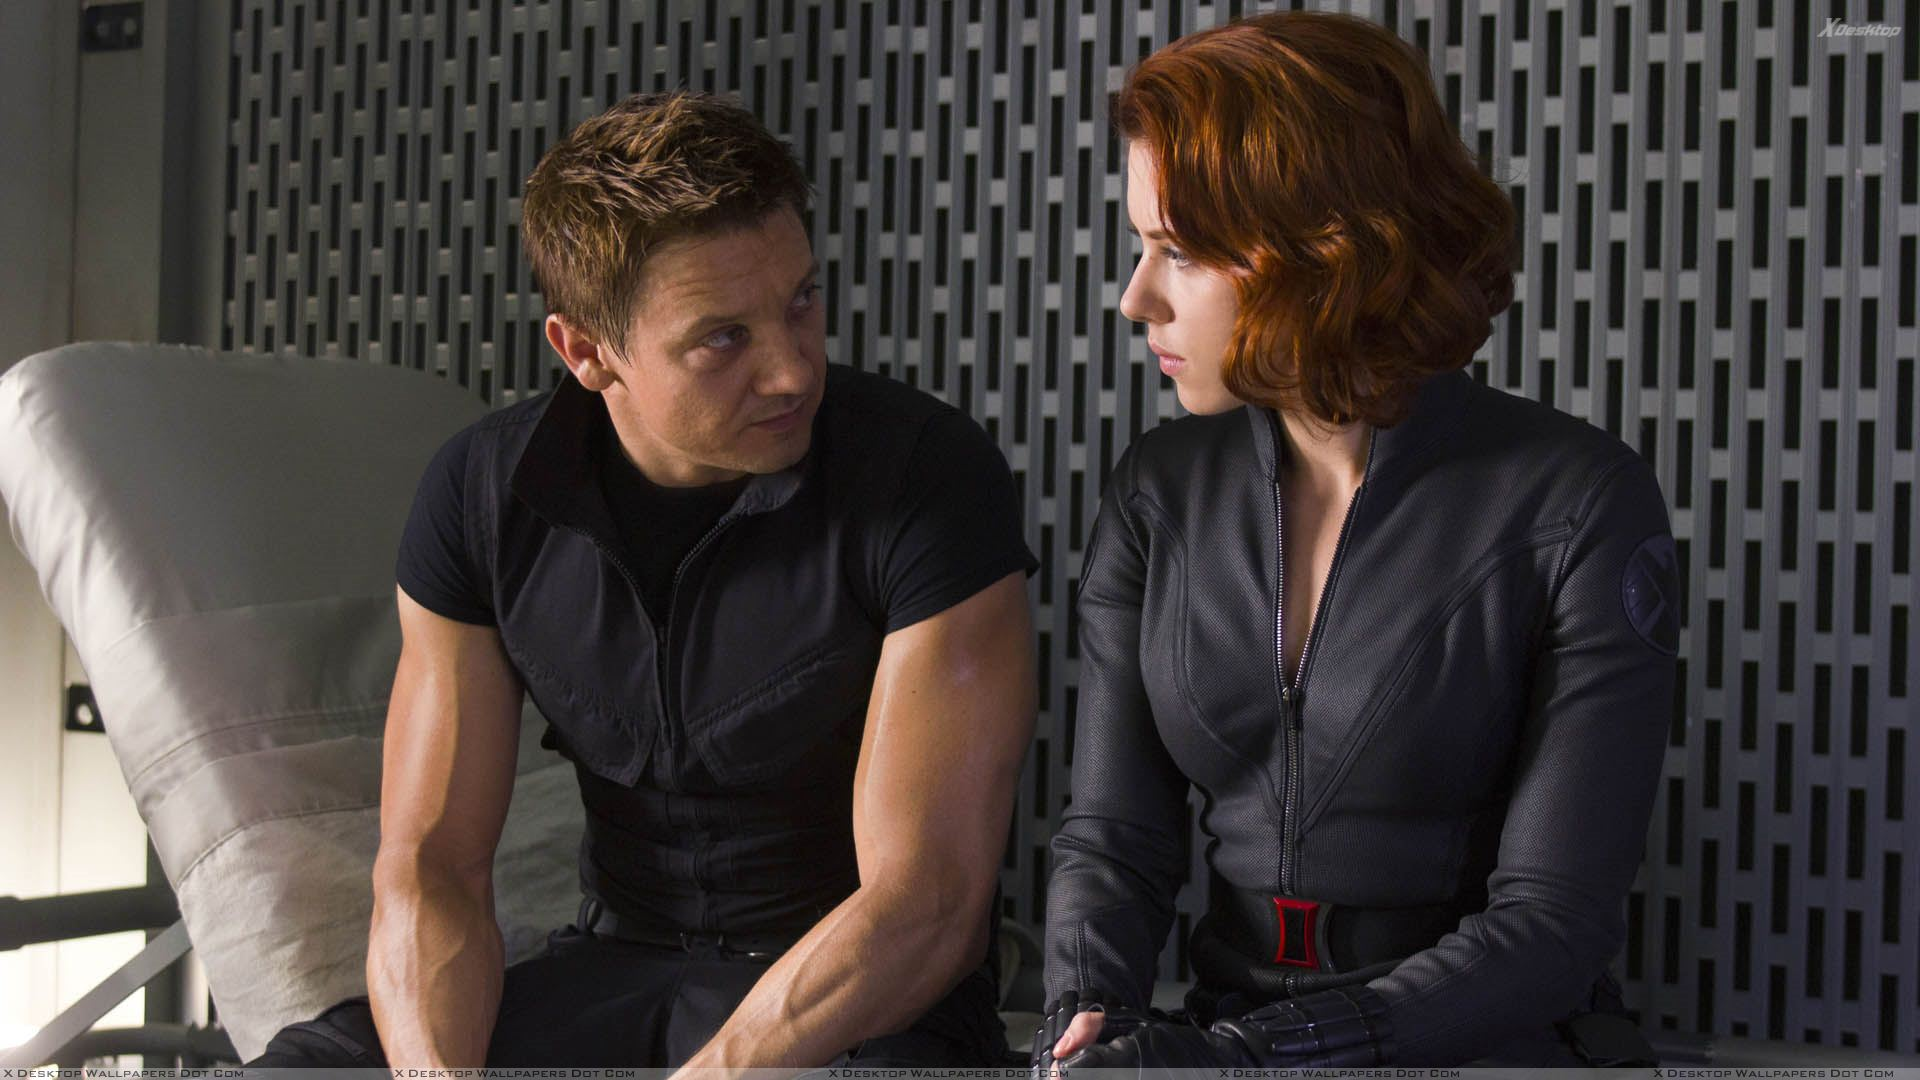 The Avengers – Jeremy Renner And Scarlett Johansson ...